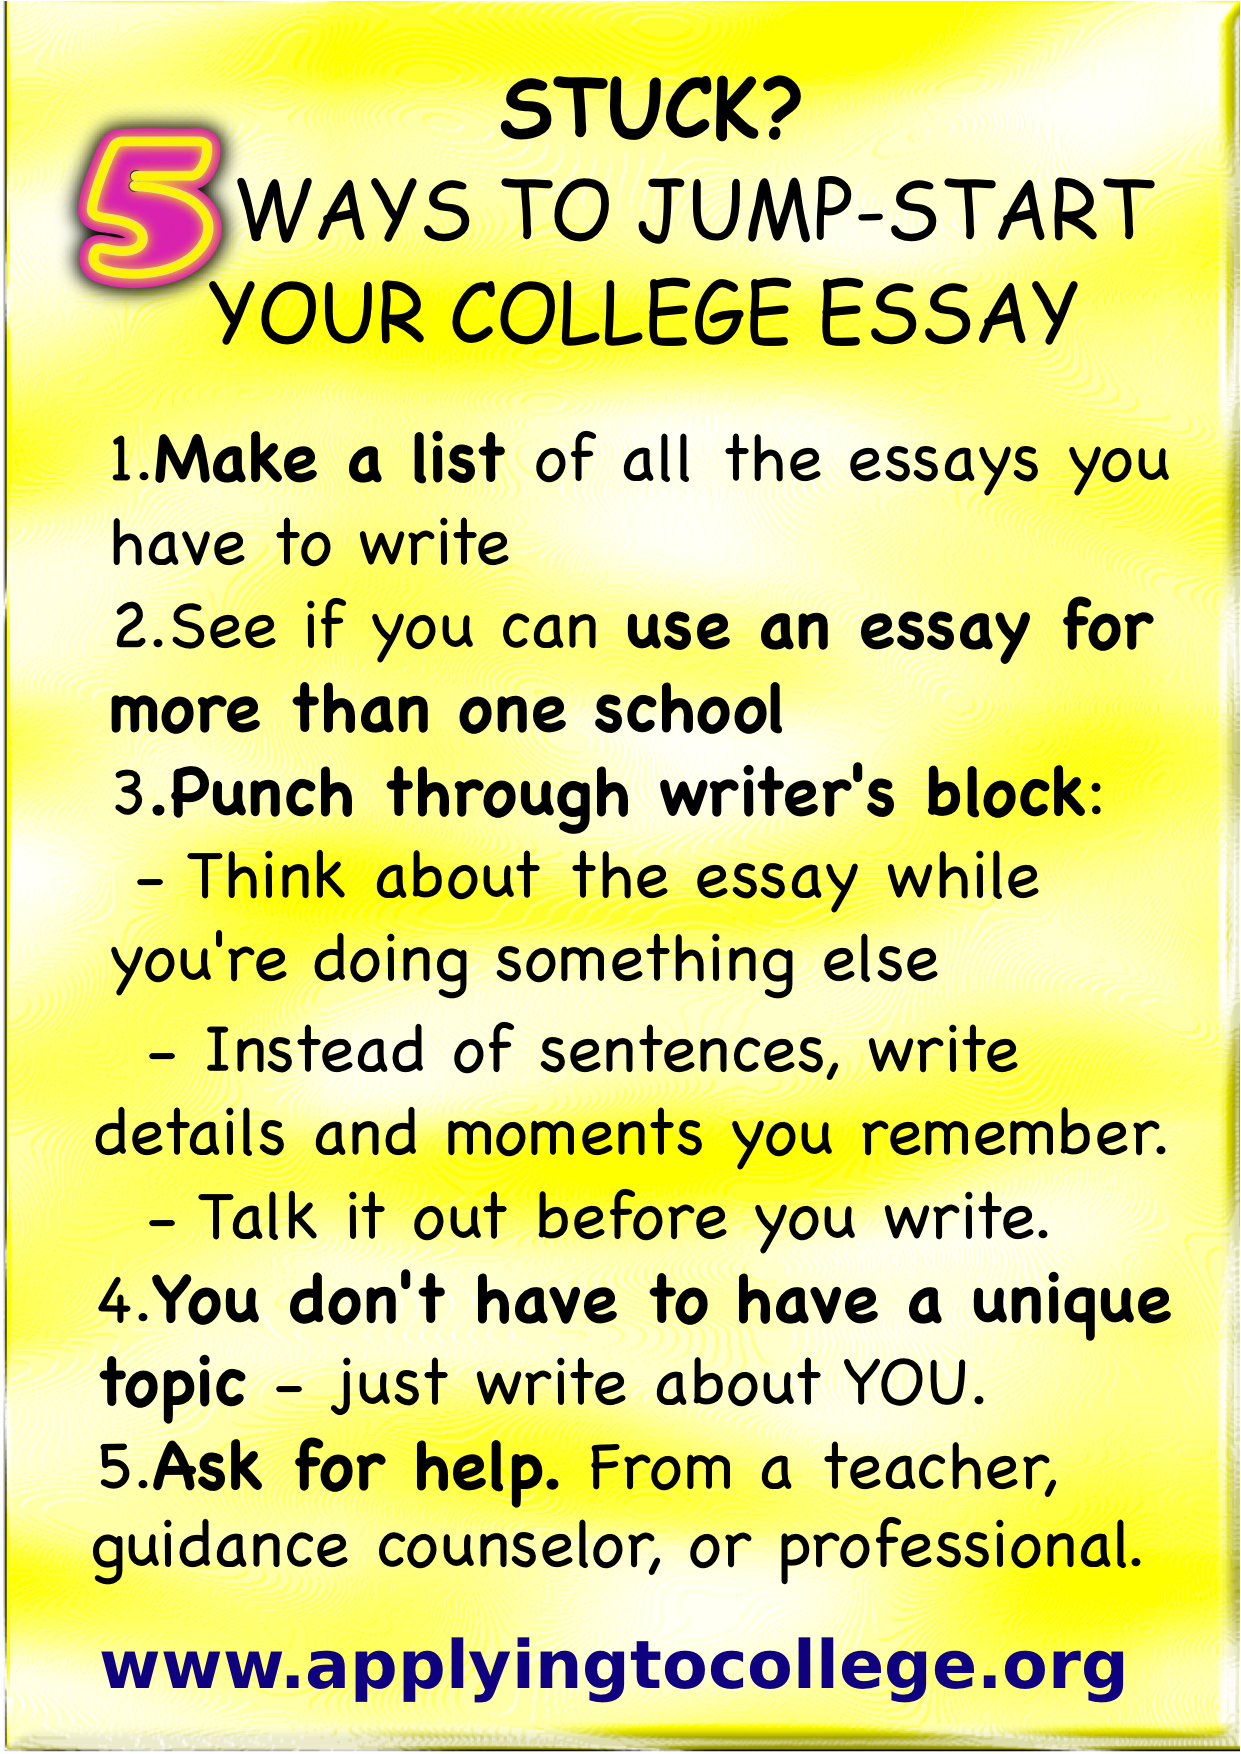 University Of Maryland Essay Examples